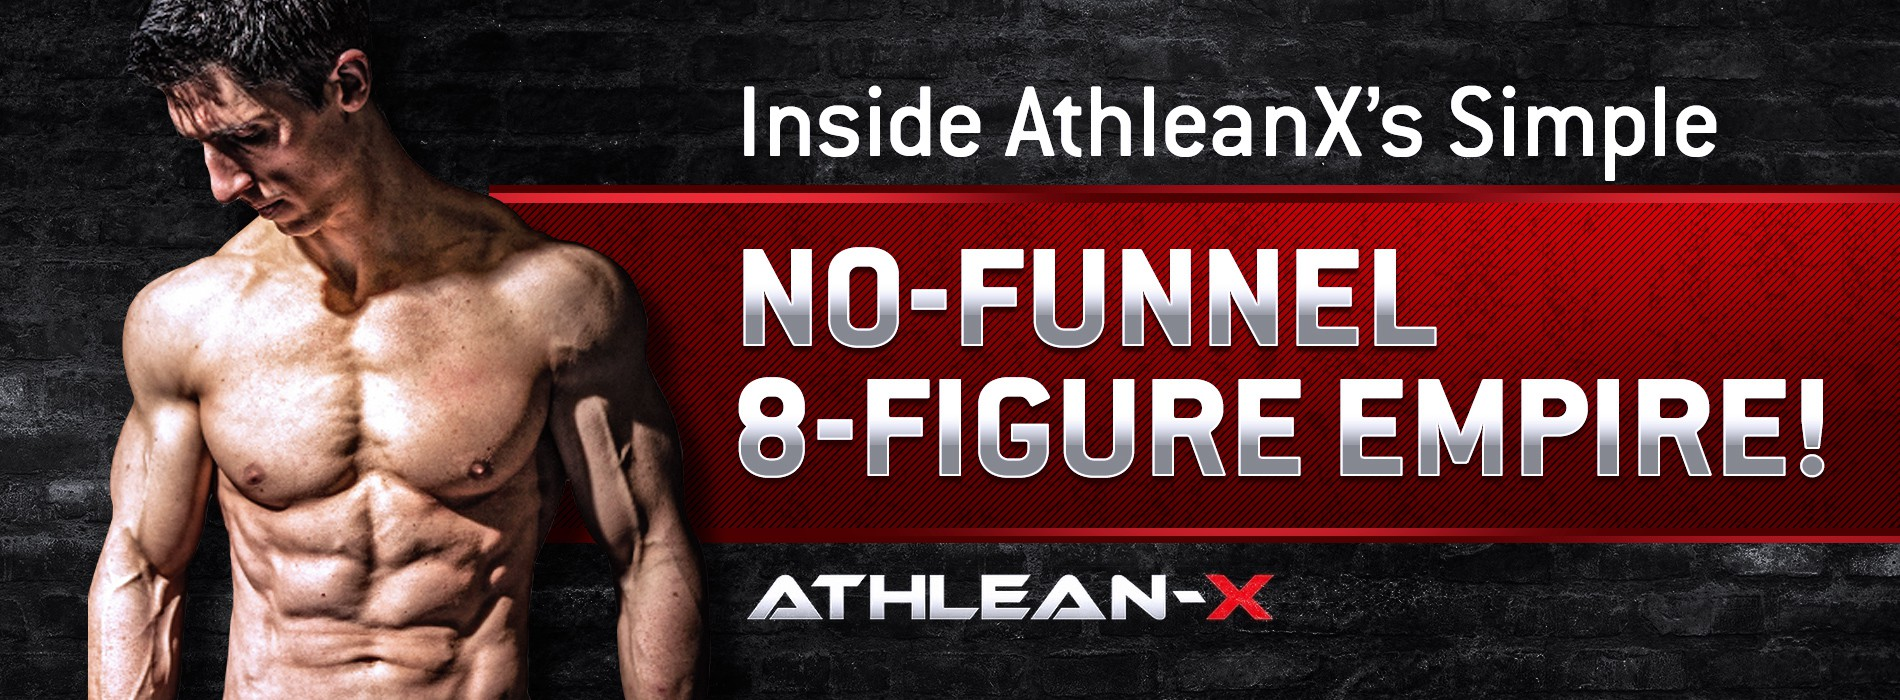 Inside AthleanX's Simple, No-Funnel 8-Figure Empire!